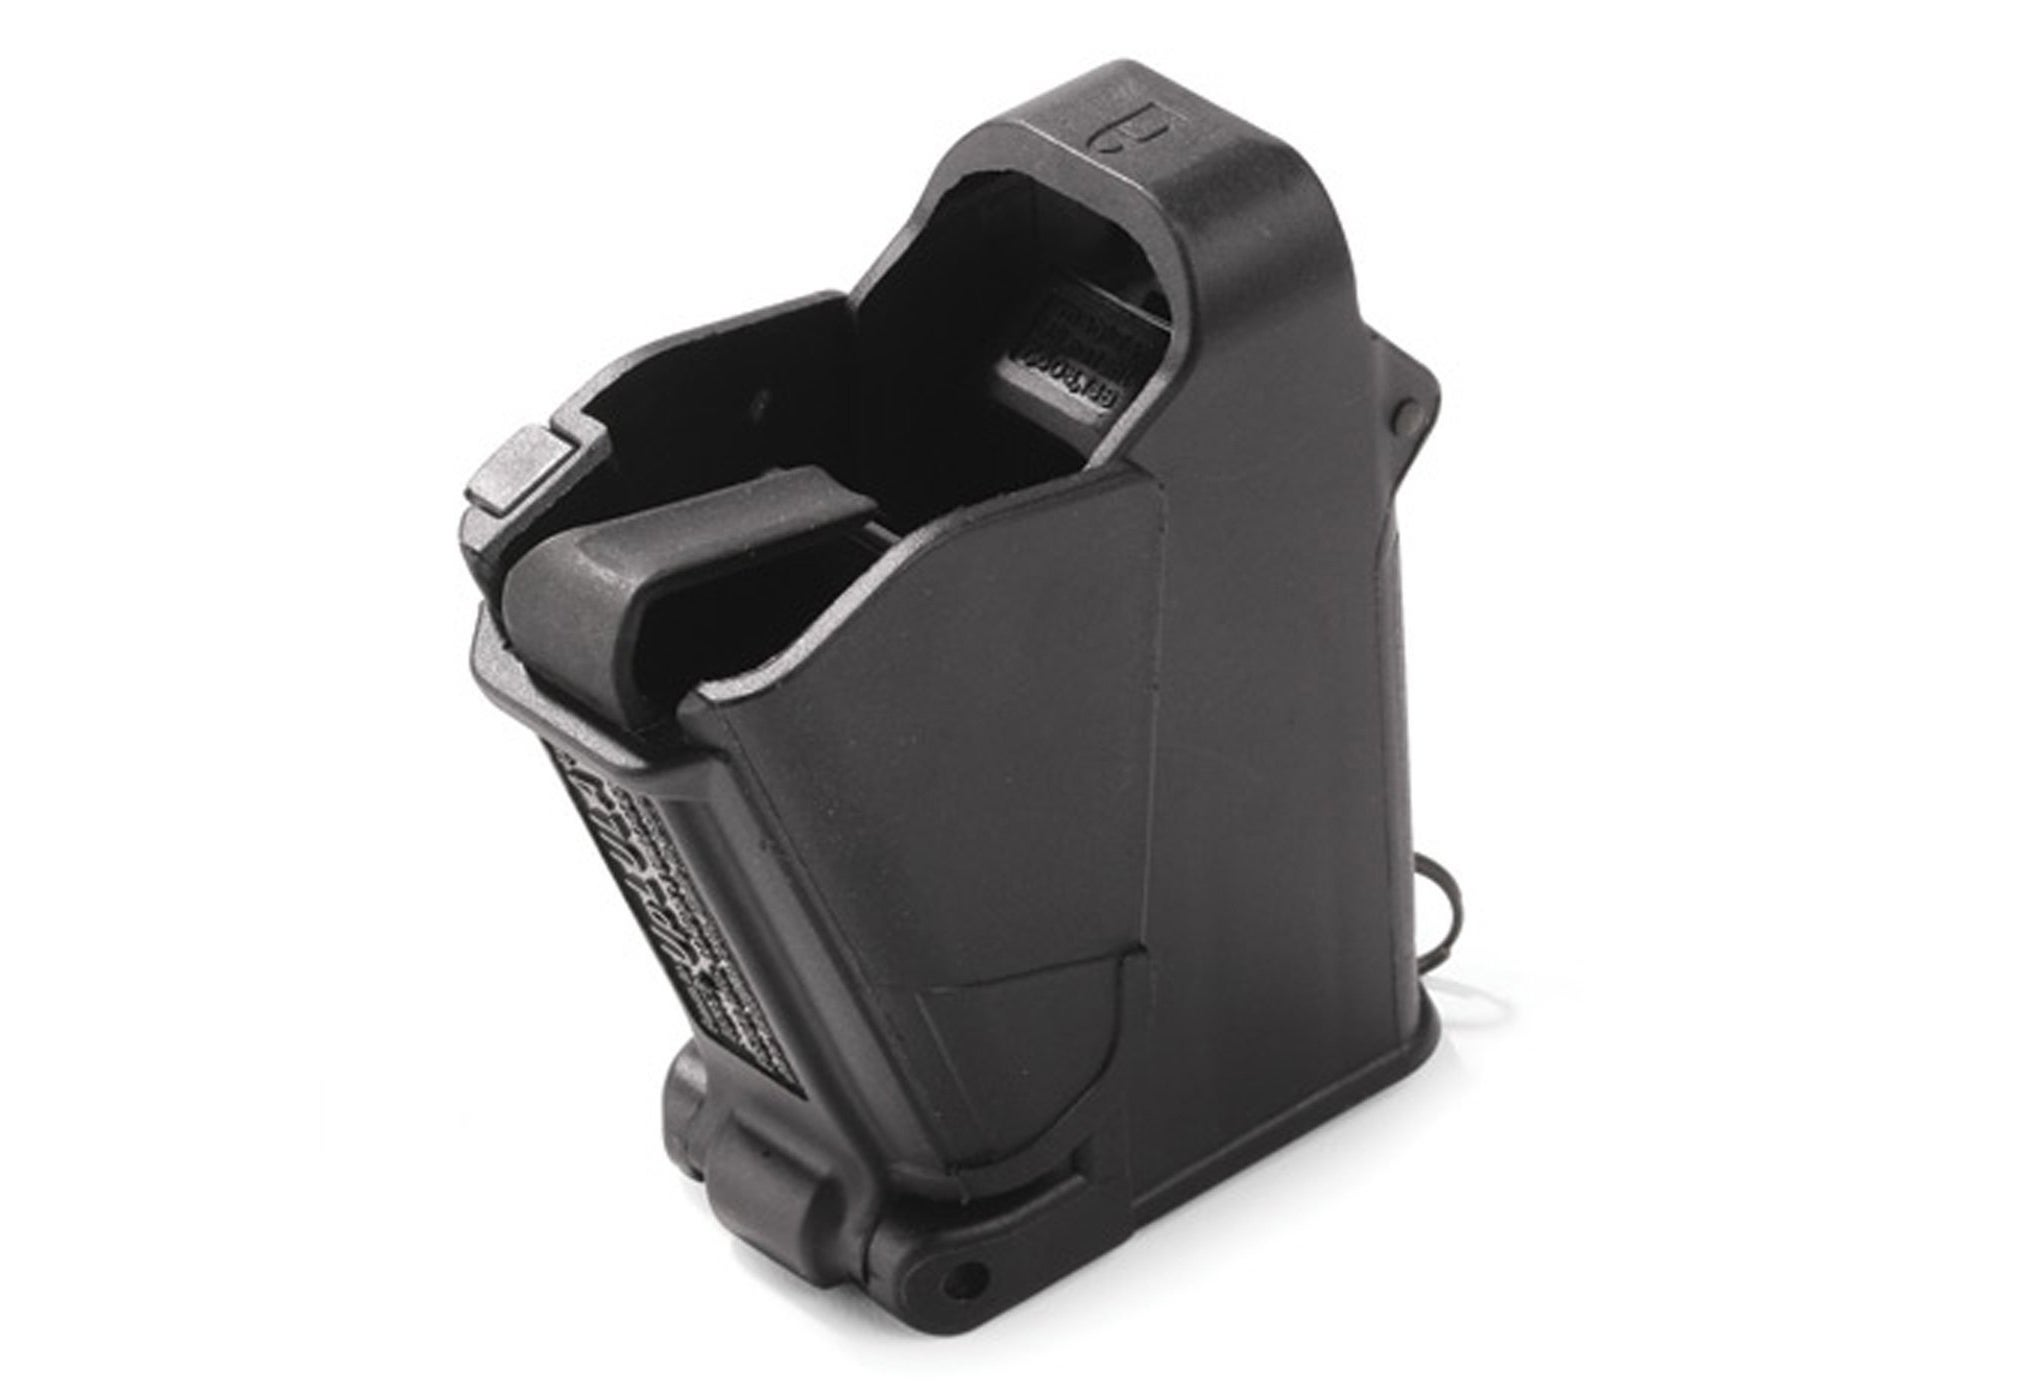 The Maglula UpLULA pistol magazine loader really saves your thumbs during those long range sessions.